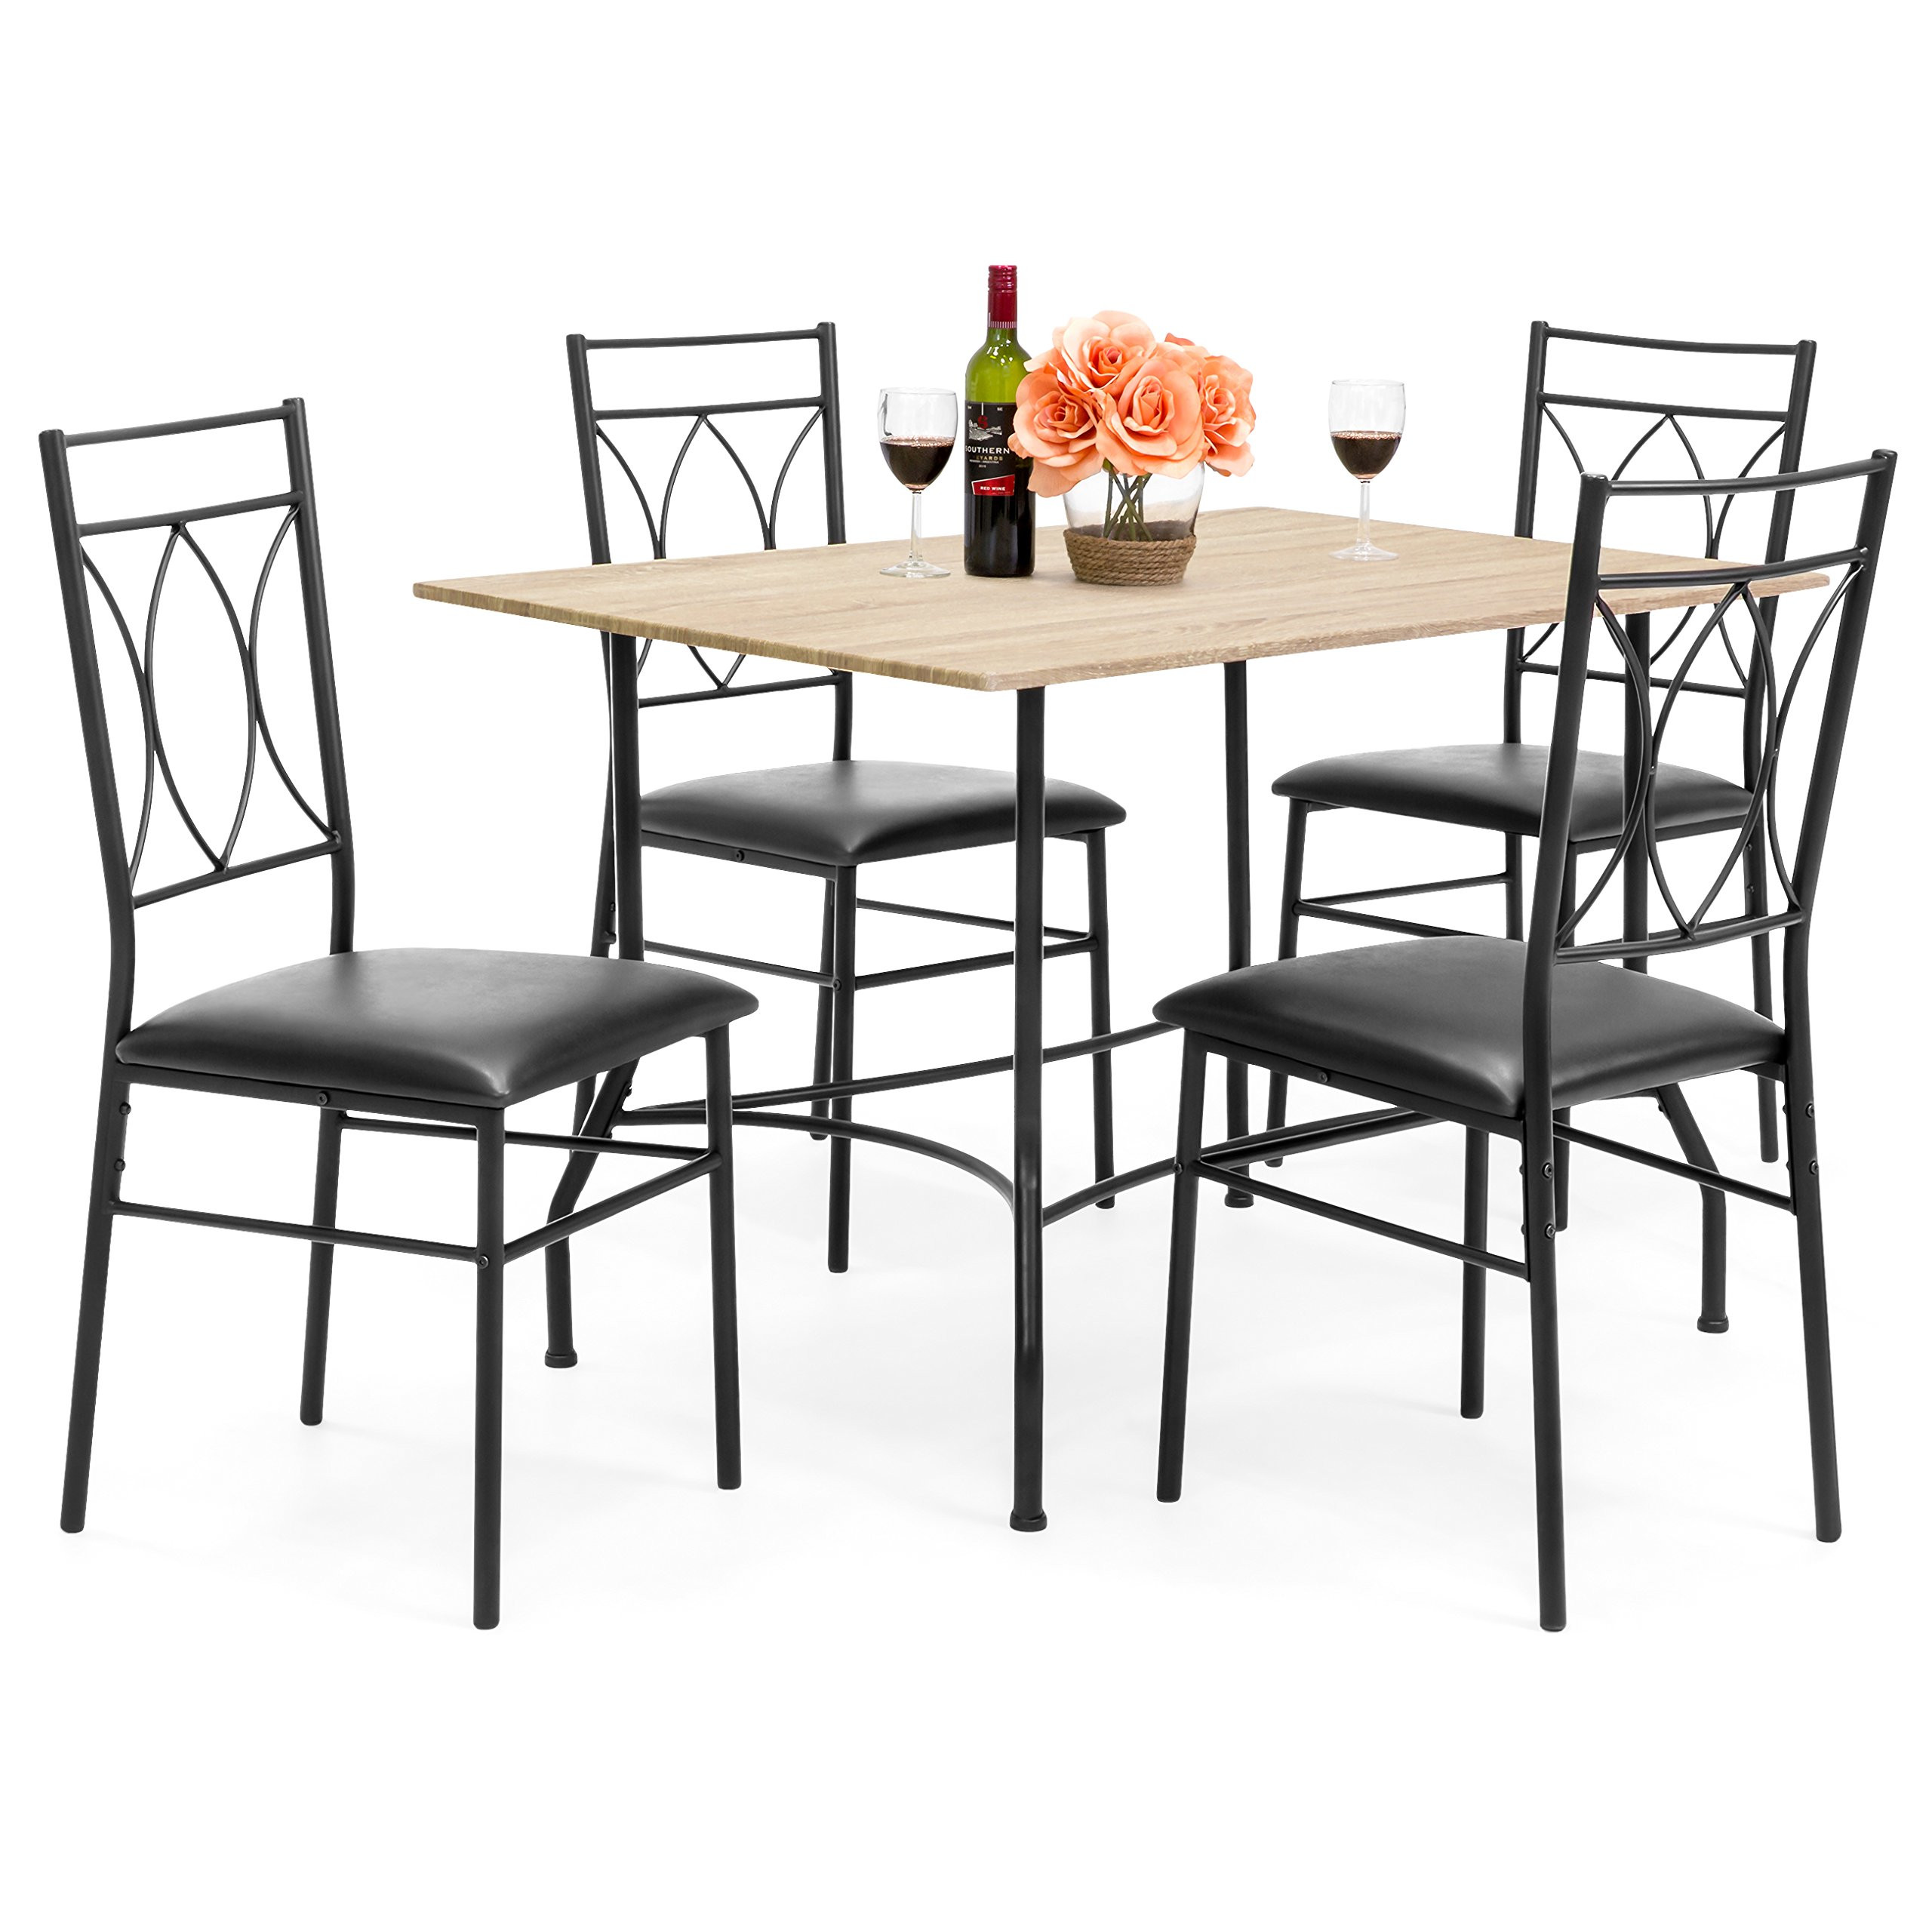 Best ideas about Patio Dining Table Clearance . Save or Pin CLEARANCE Outdoor Patio Dining Set for 4 Wood Table and Now.